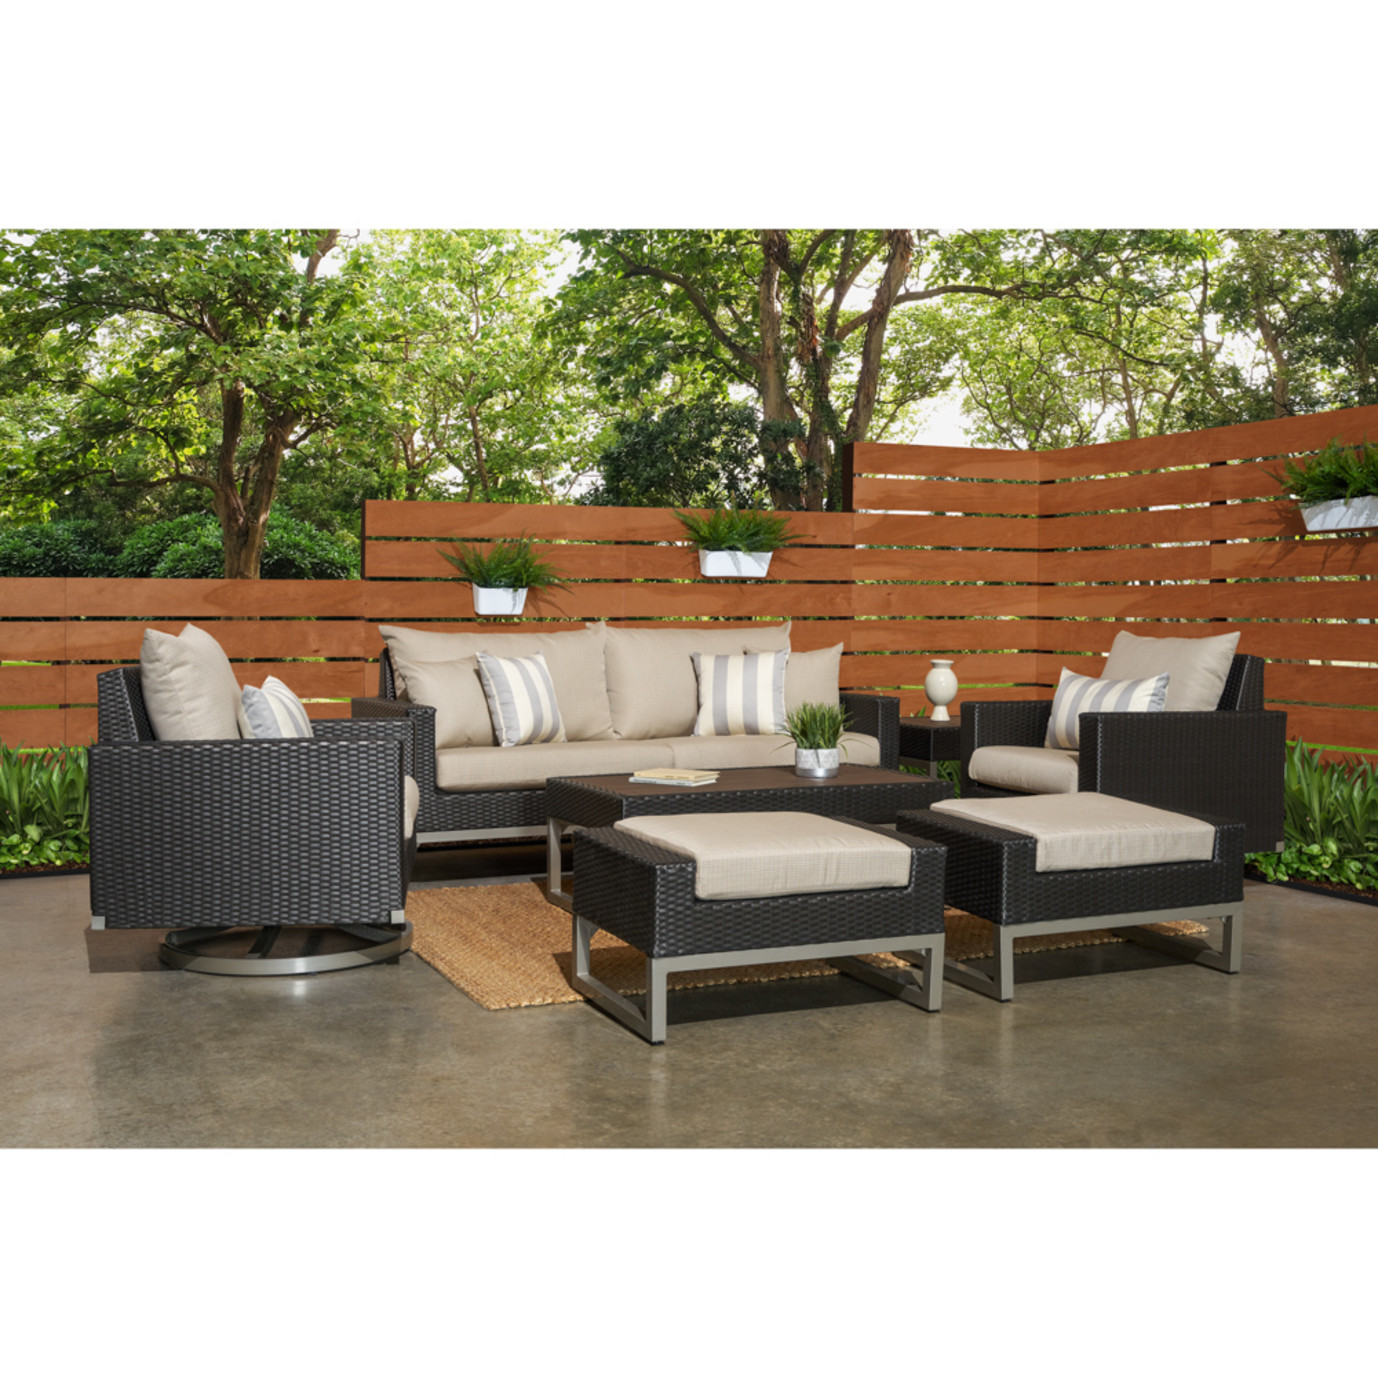 Milo™ Espresso 7pc Motion Deep Seating Set - Slate Gray